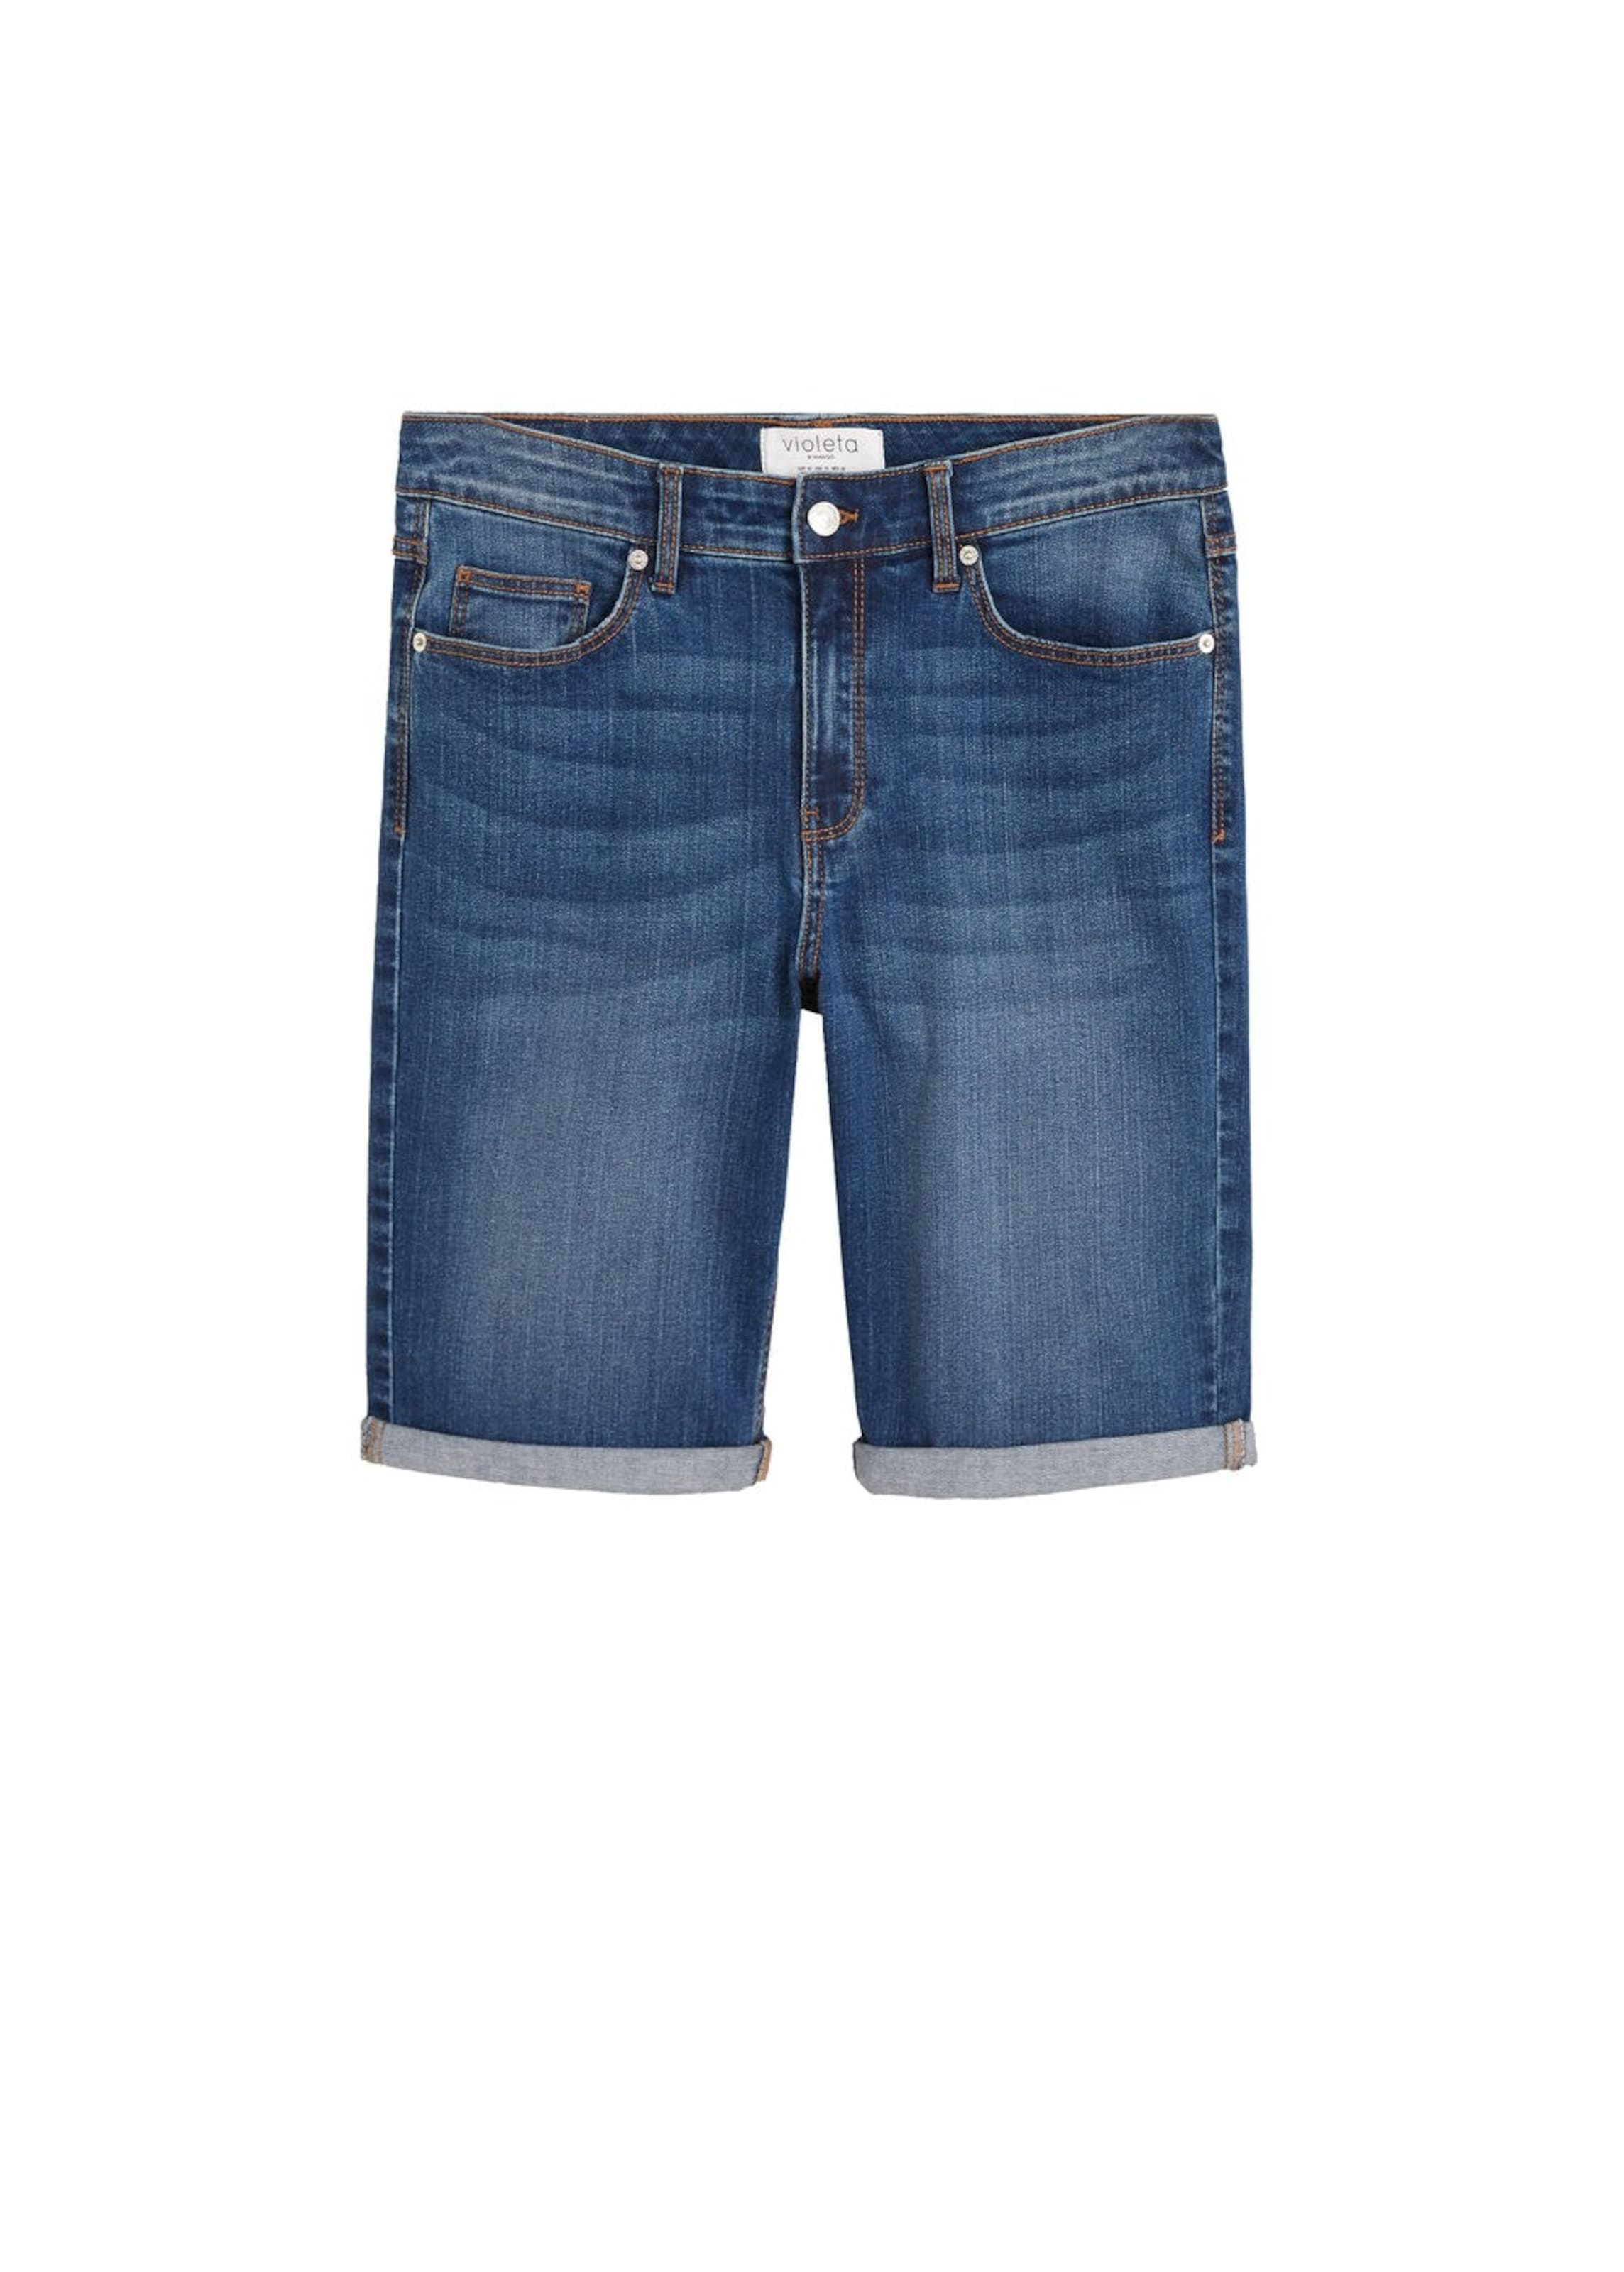 Mango In Bermudas Blue By 'soda' Violeta Denim ynONPv0w8m